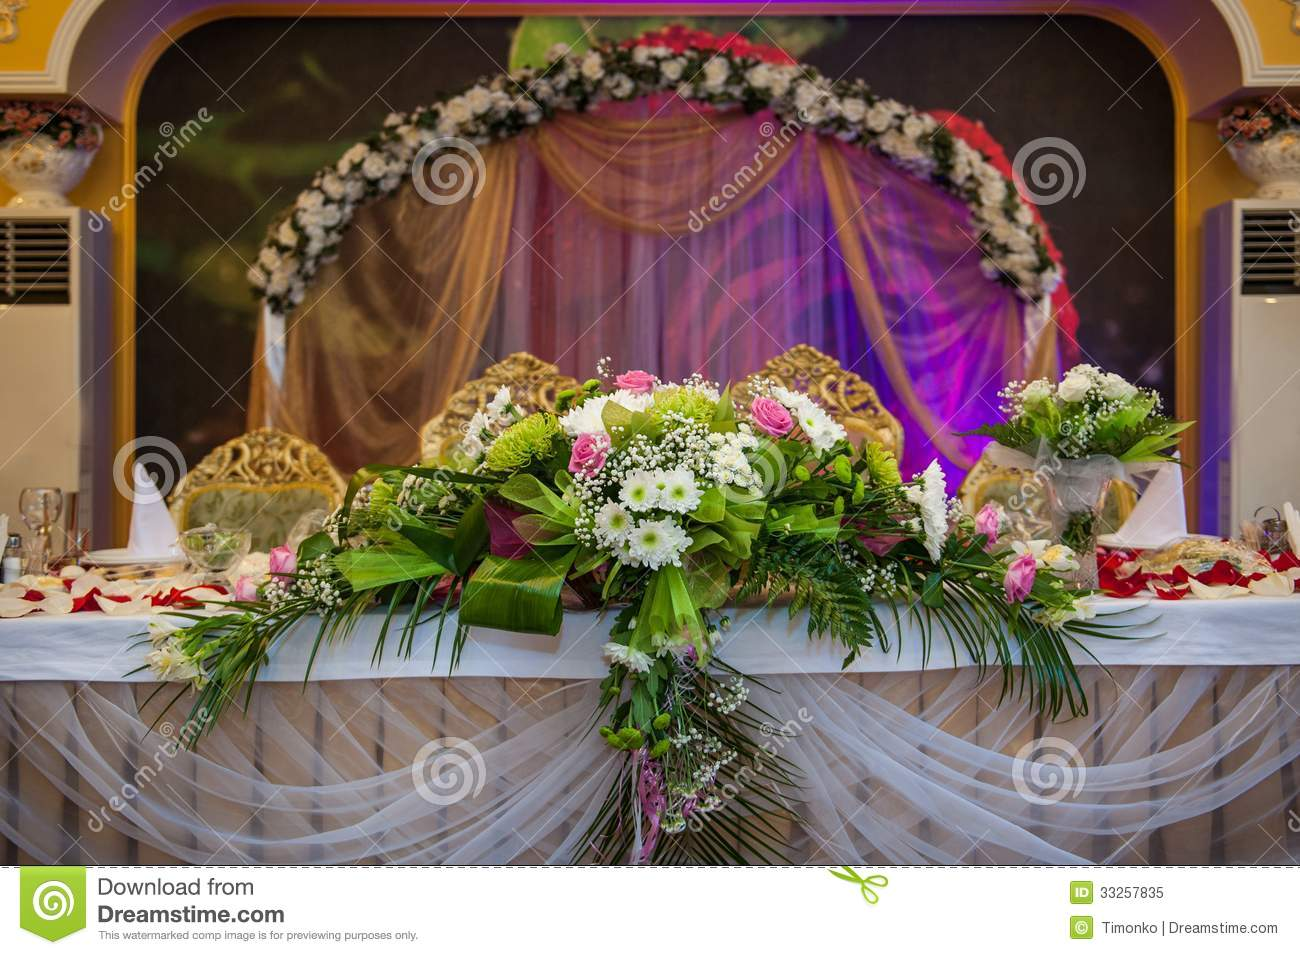 Wedding Table Groom And Bride Stock Image Image 33257835 : wedding table groom bride decoration flowers 33257835 from www.dreamstime.com size 1300 x 955 jpeg 166kB